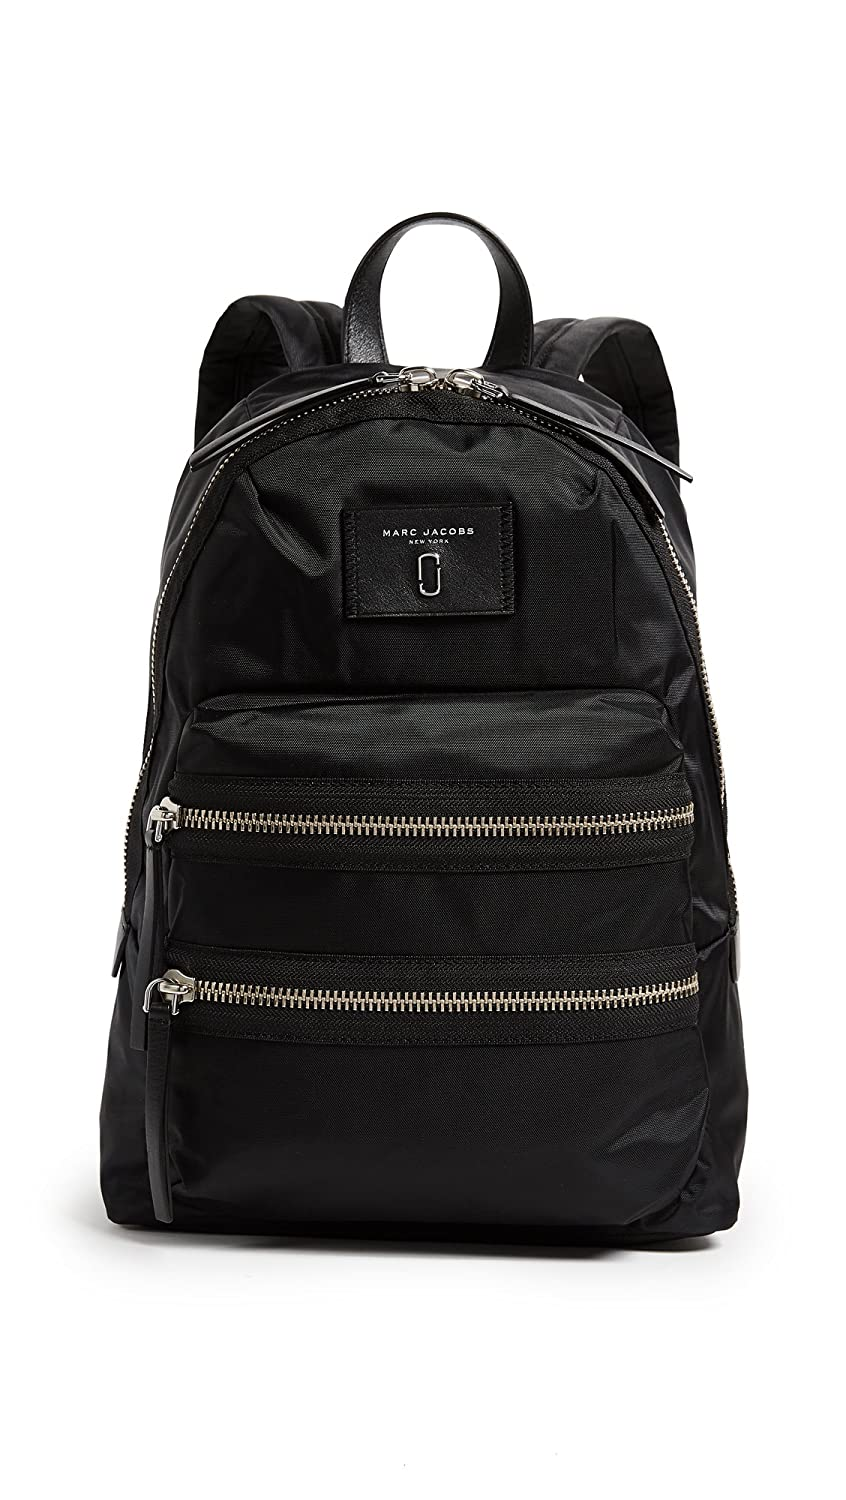 Backpack for Women, Pink, Nylon, 2017, one size Marc Jacobs